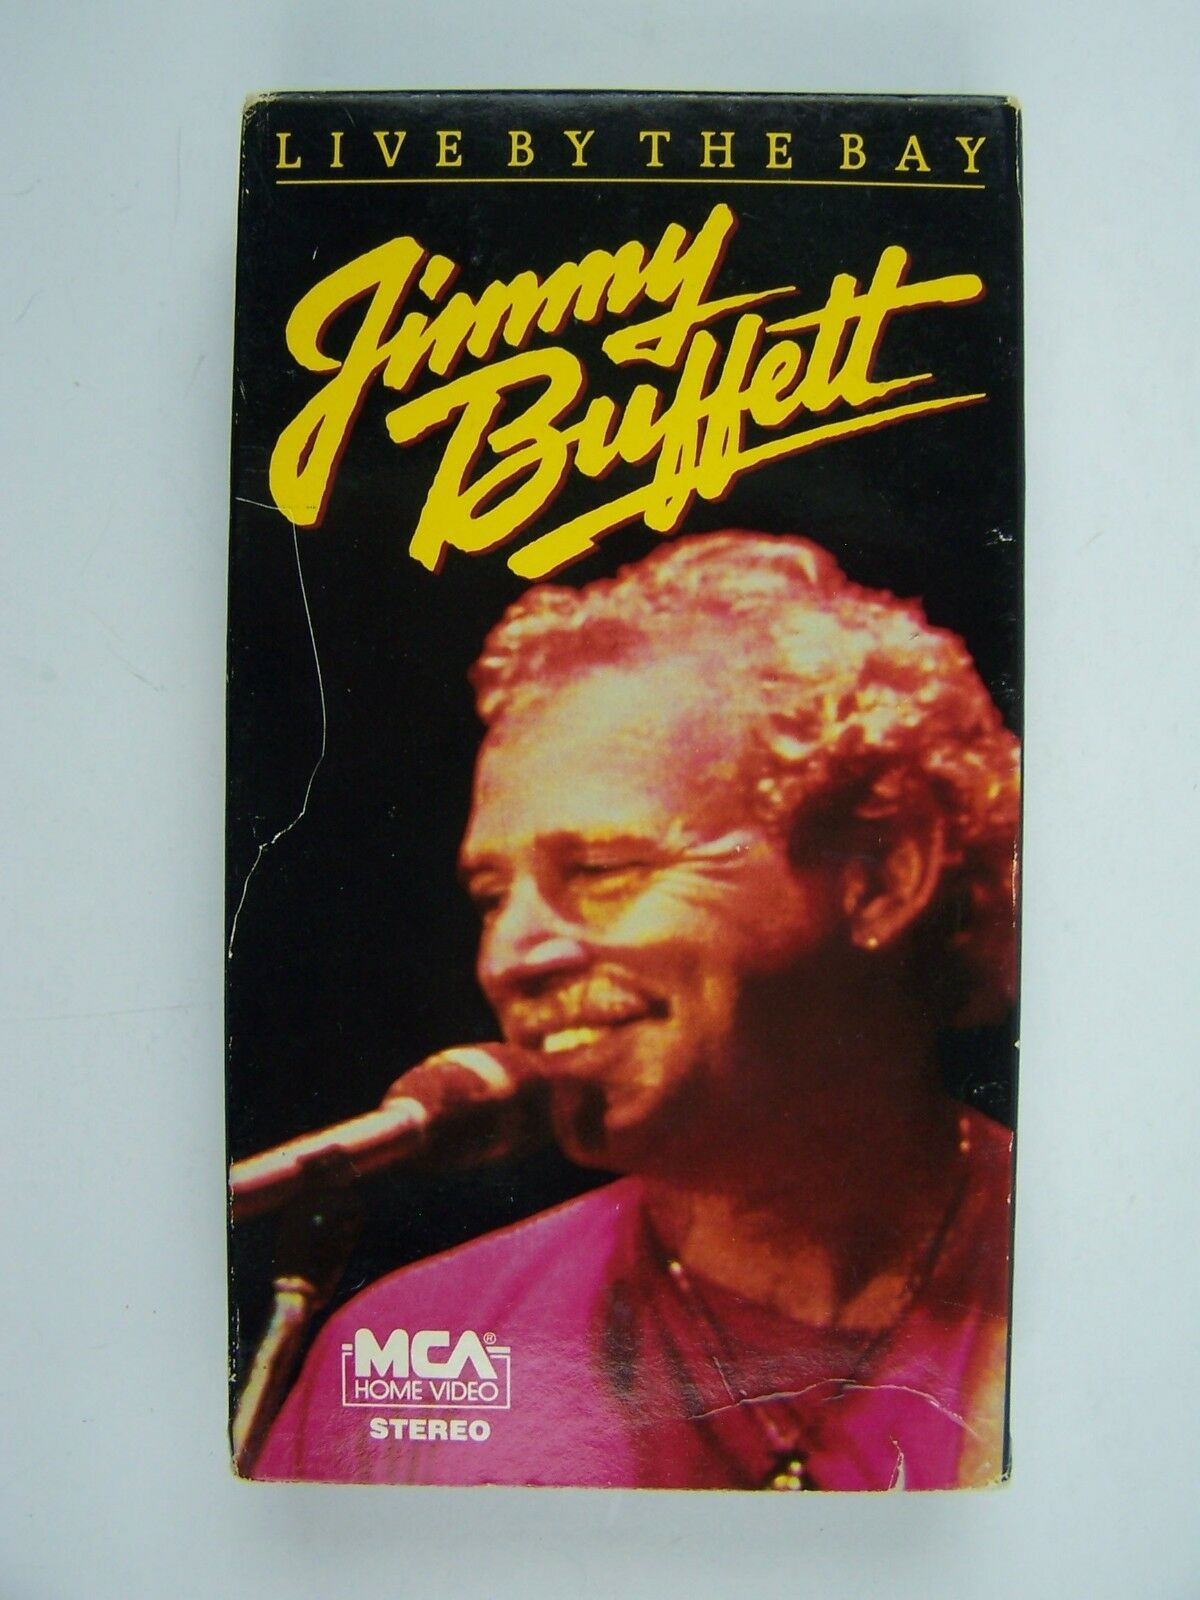 Jimmy Buffett - Live By the Bay VHS Video Tape Concert